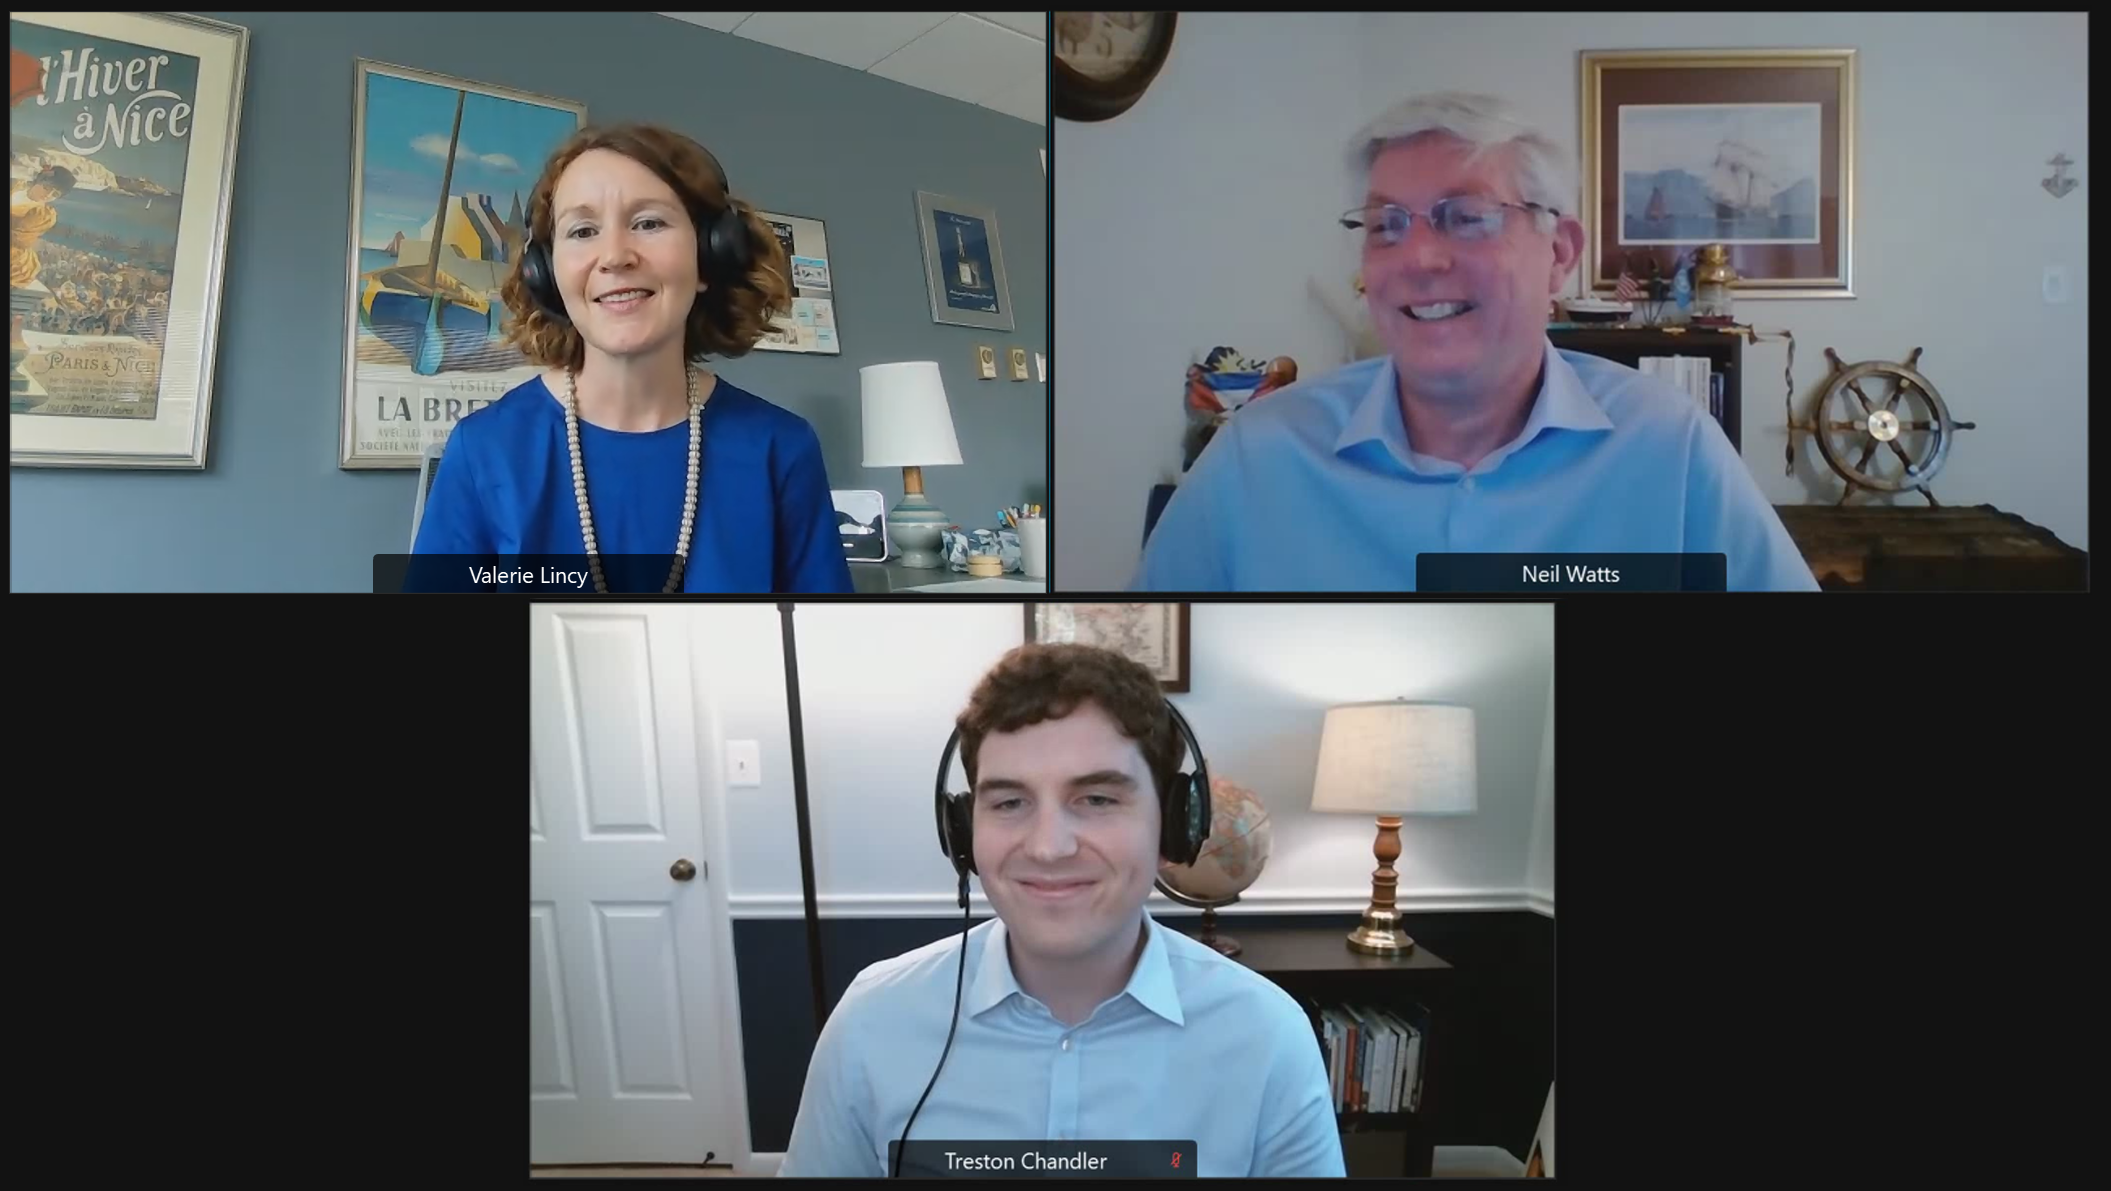 A screenshot of Neil Watts, Valerie Lincy, and Treston Chandler in a virtual meeting.